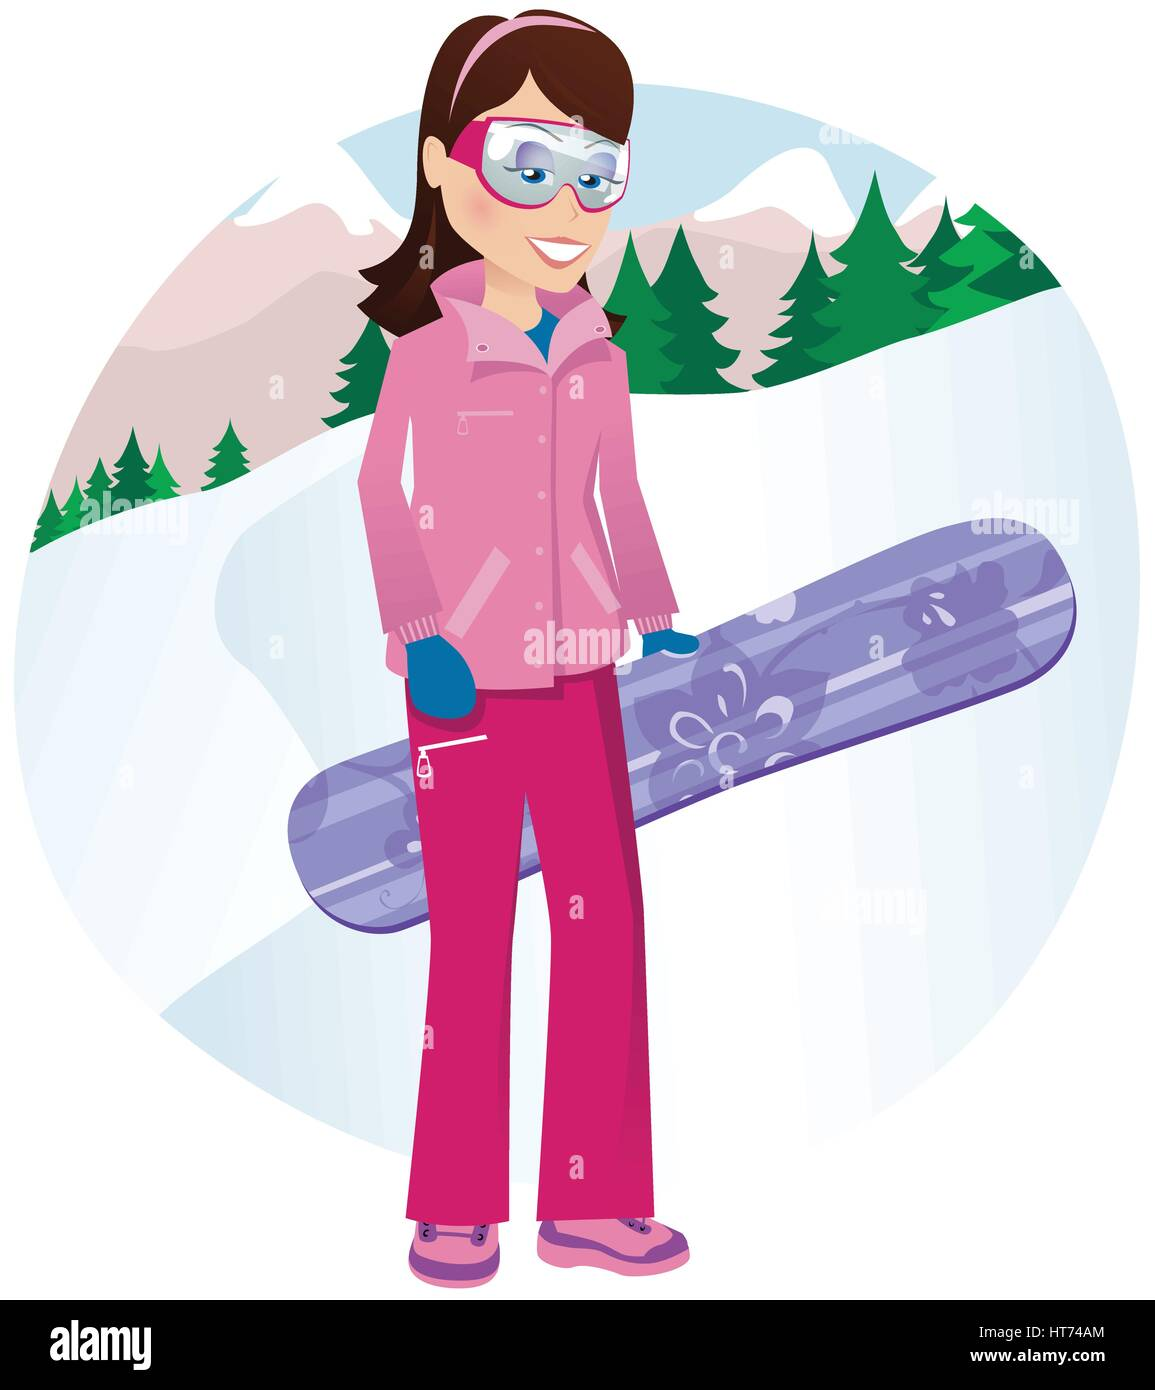 An image of a young female snowboarder posing on the mountainside. - Stock Vector